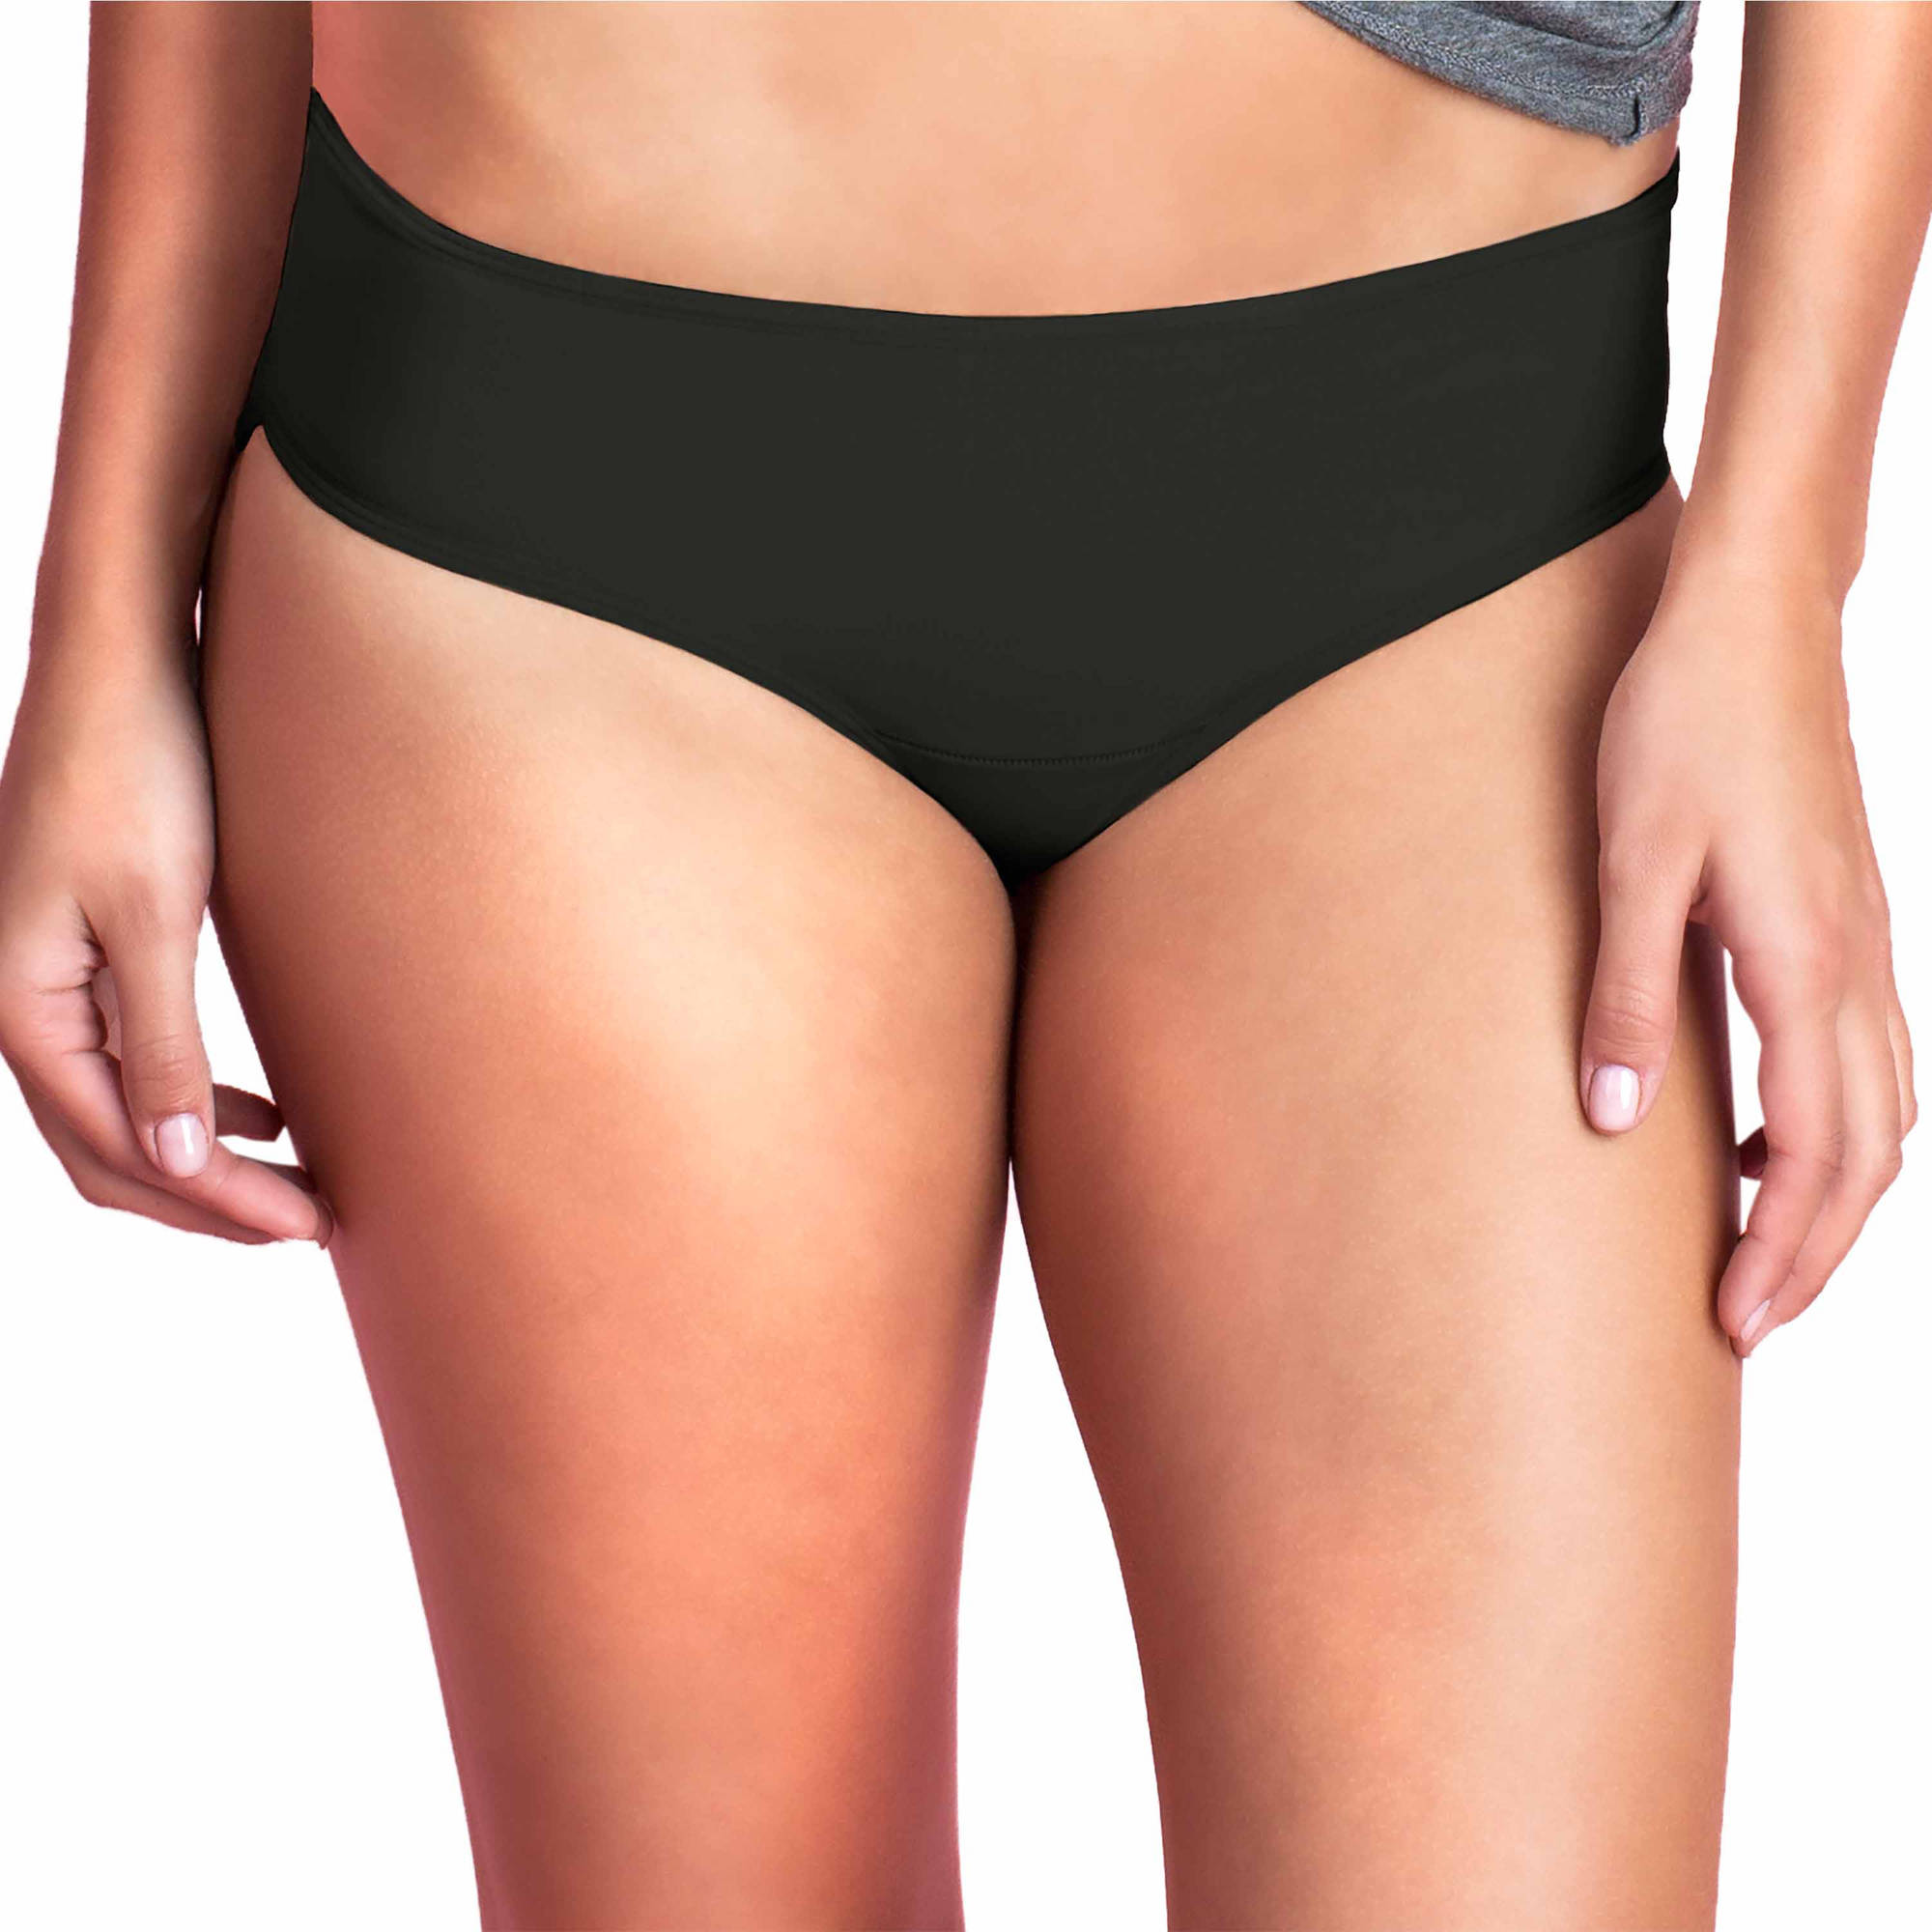 Lingerie Solutions - Buty Pant Bottom Enhancing Padded Panties